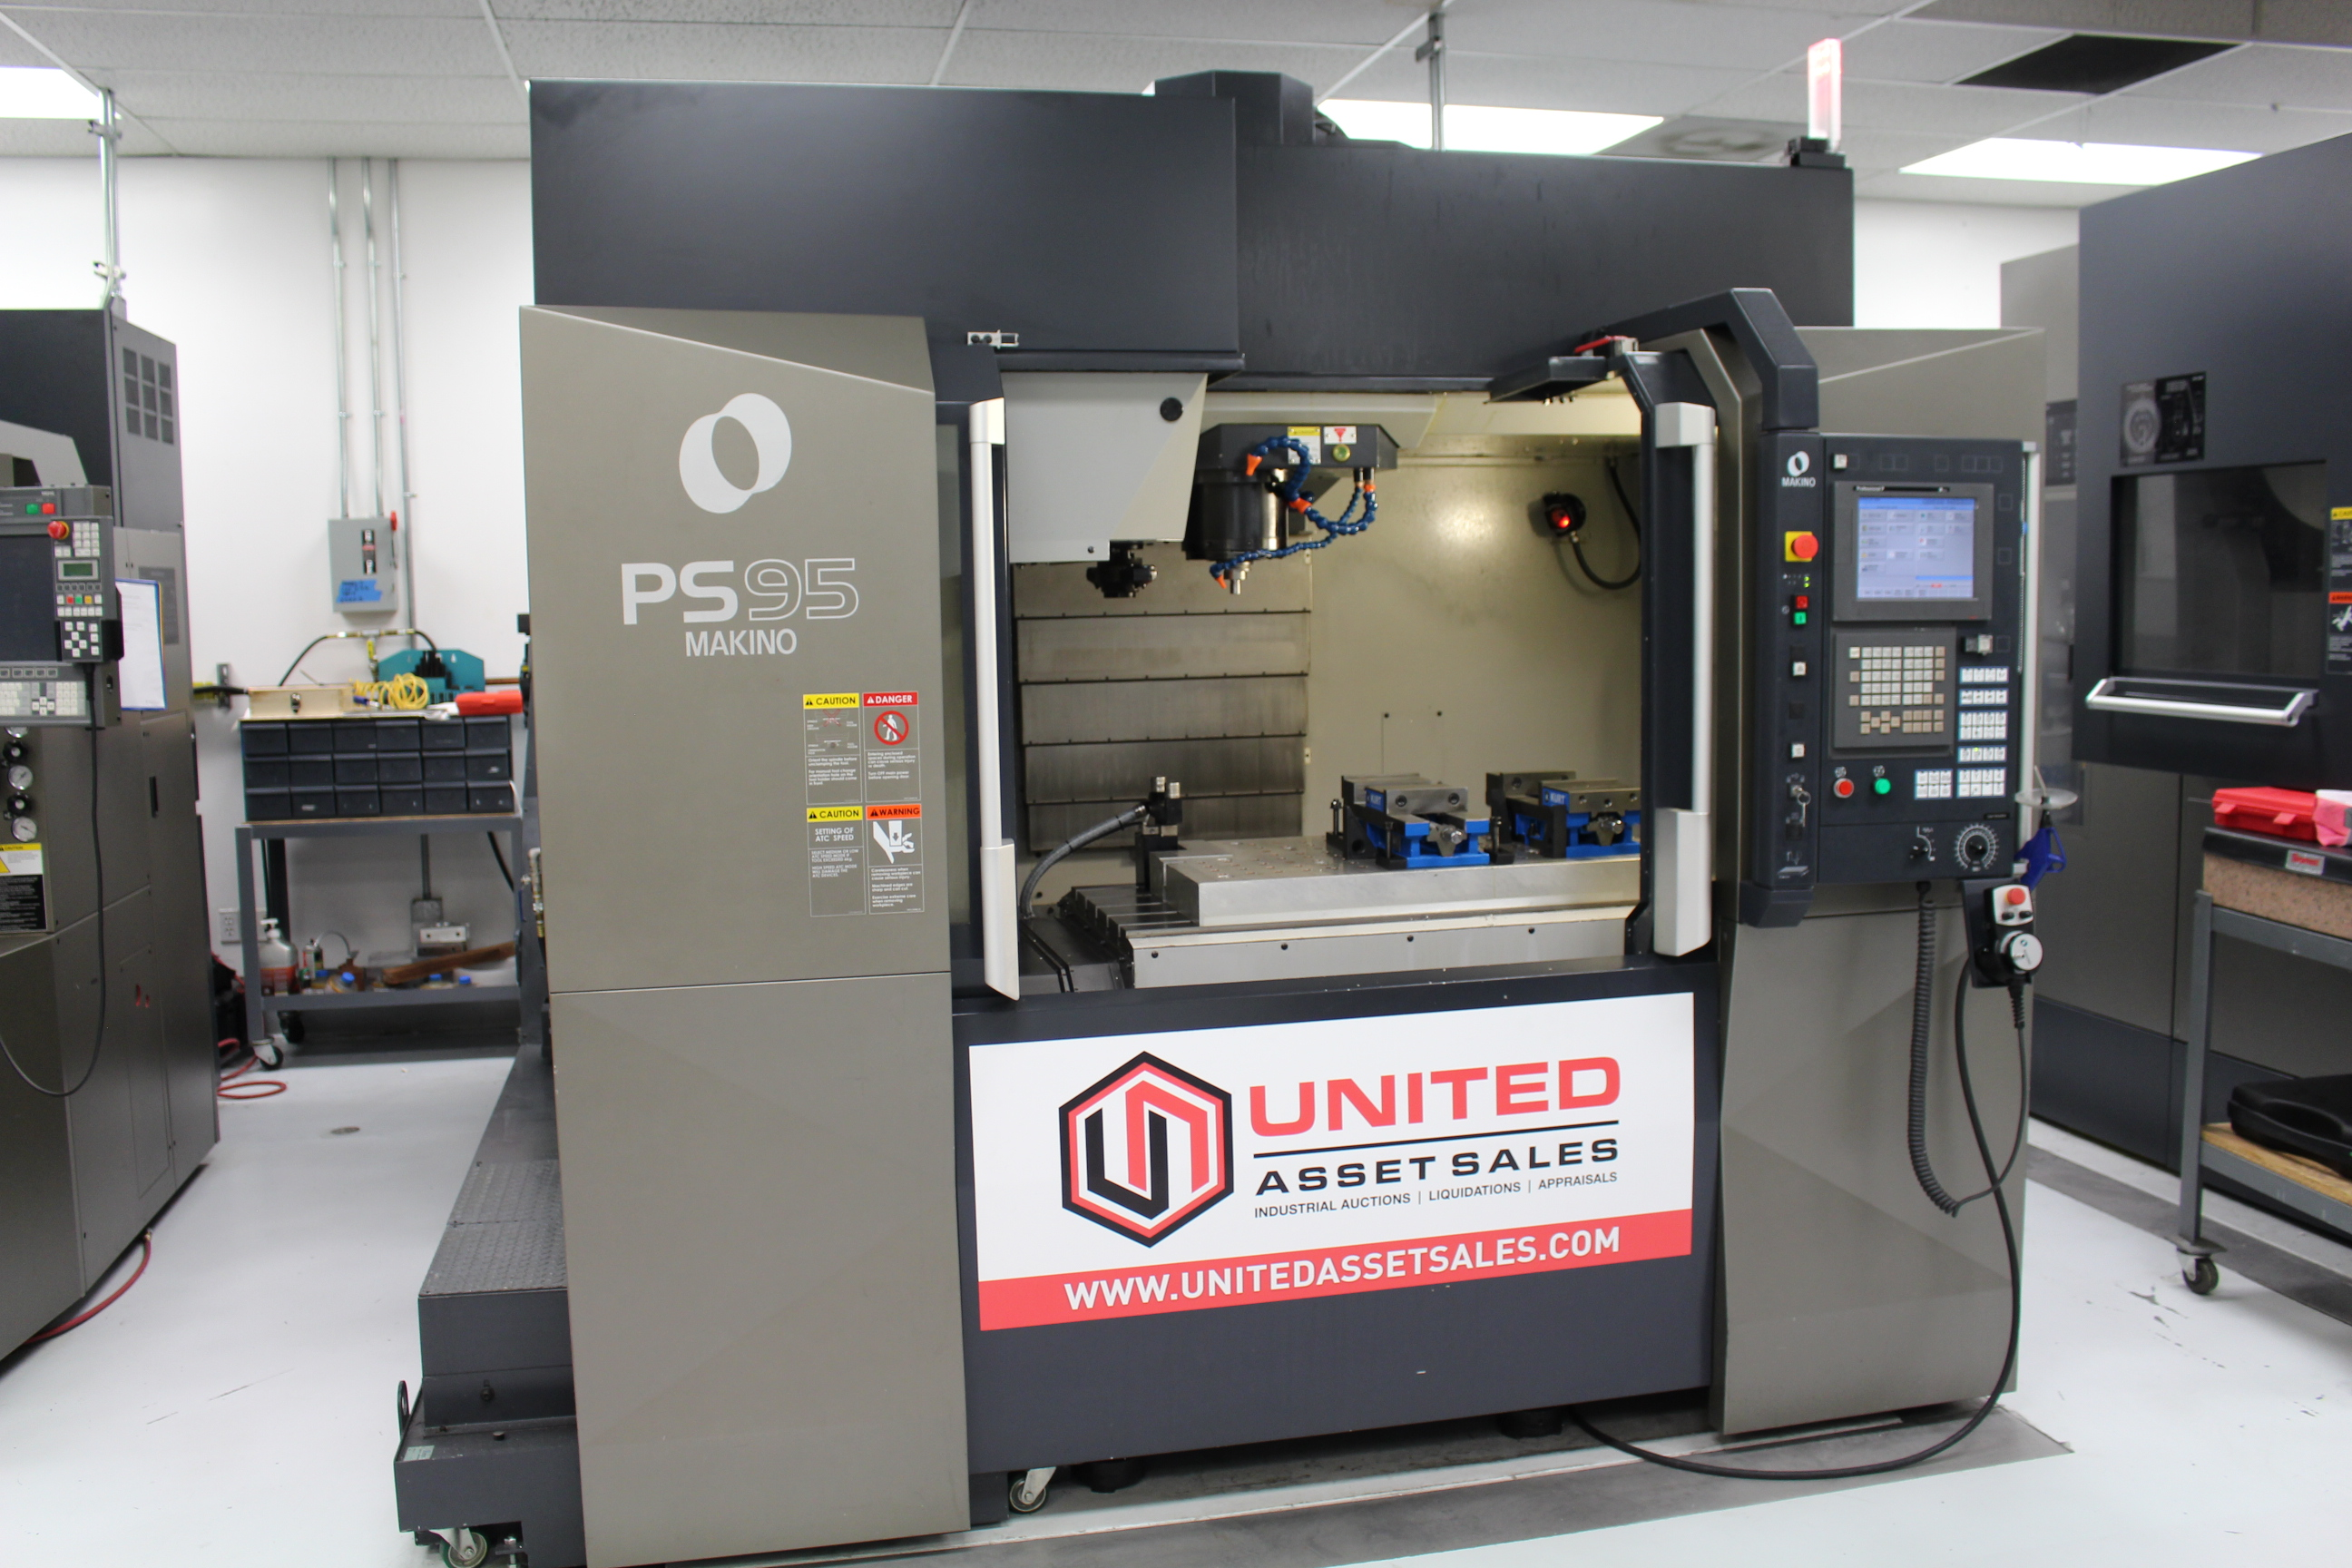 Lot 6 - 2011 MAKINO PS95 VERTICAL MACHINING CENTER, 14,000 RPM SPINDLE